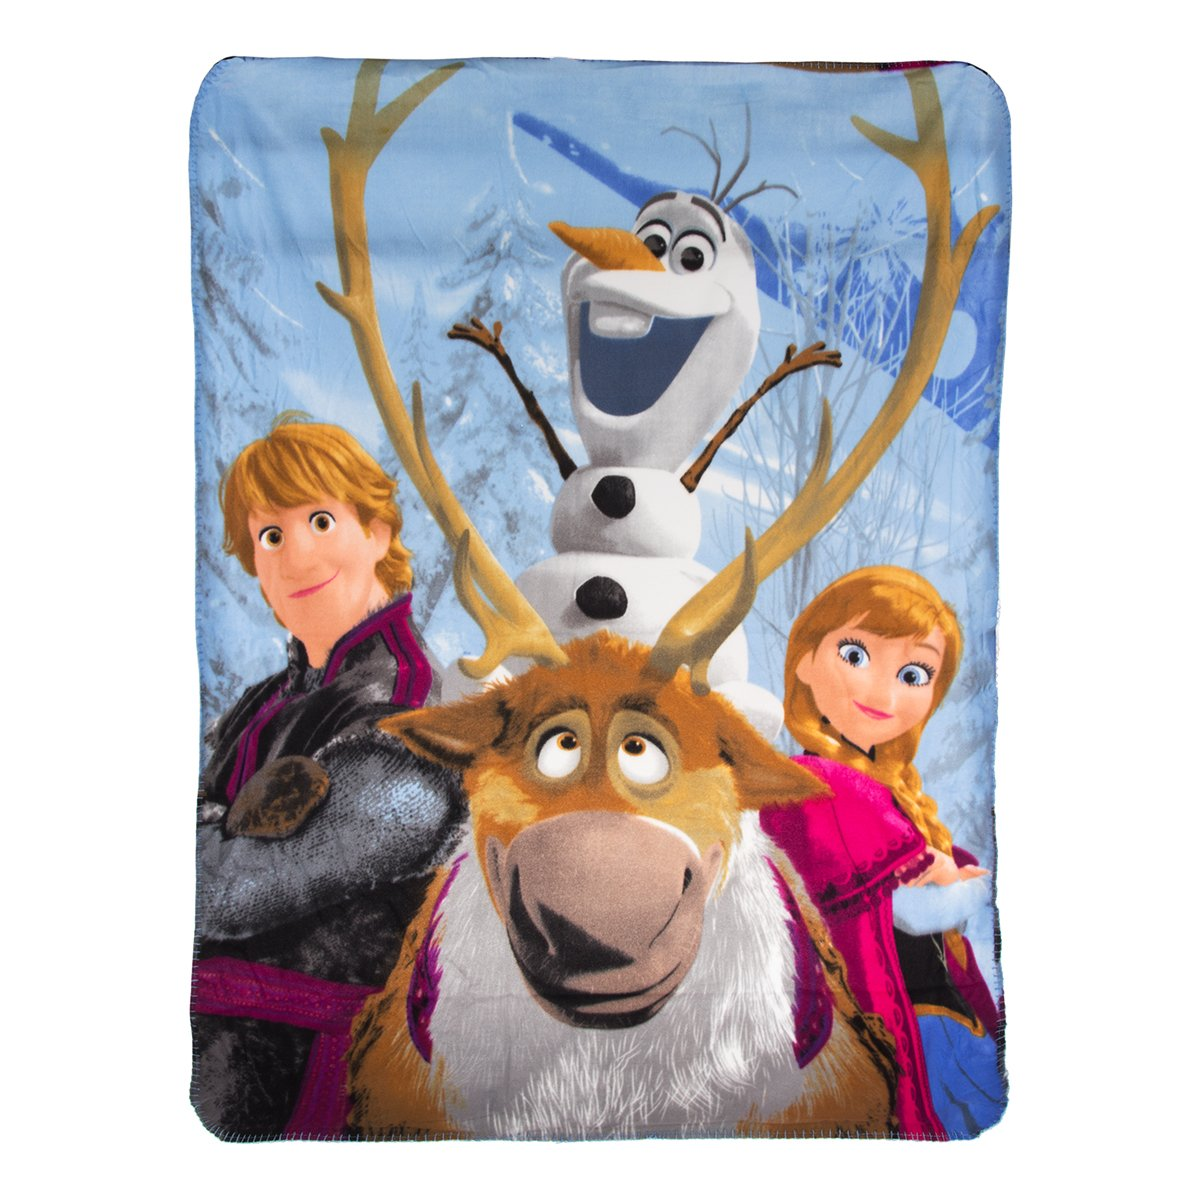 Disney Frozen, Out in The Cold Fleece Throw Blanket, 46'' x 60'' by Disney